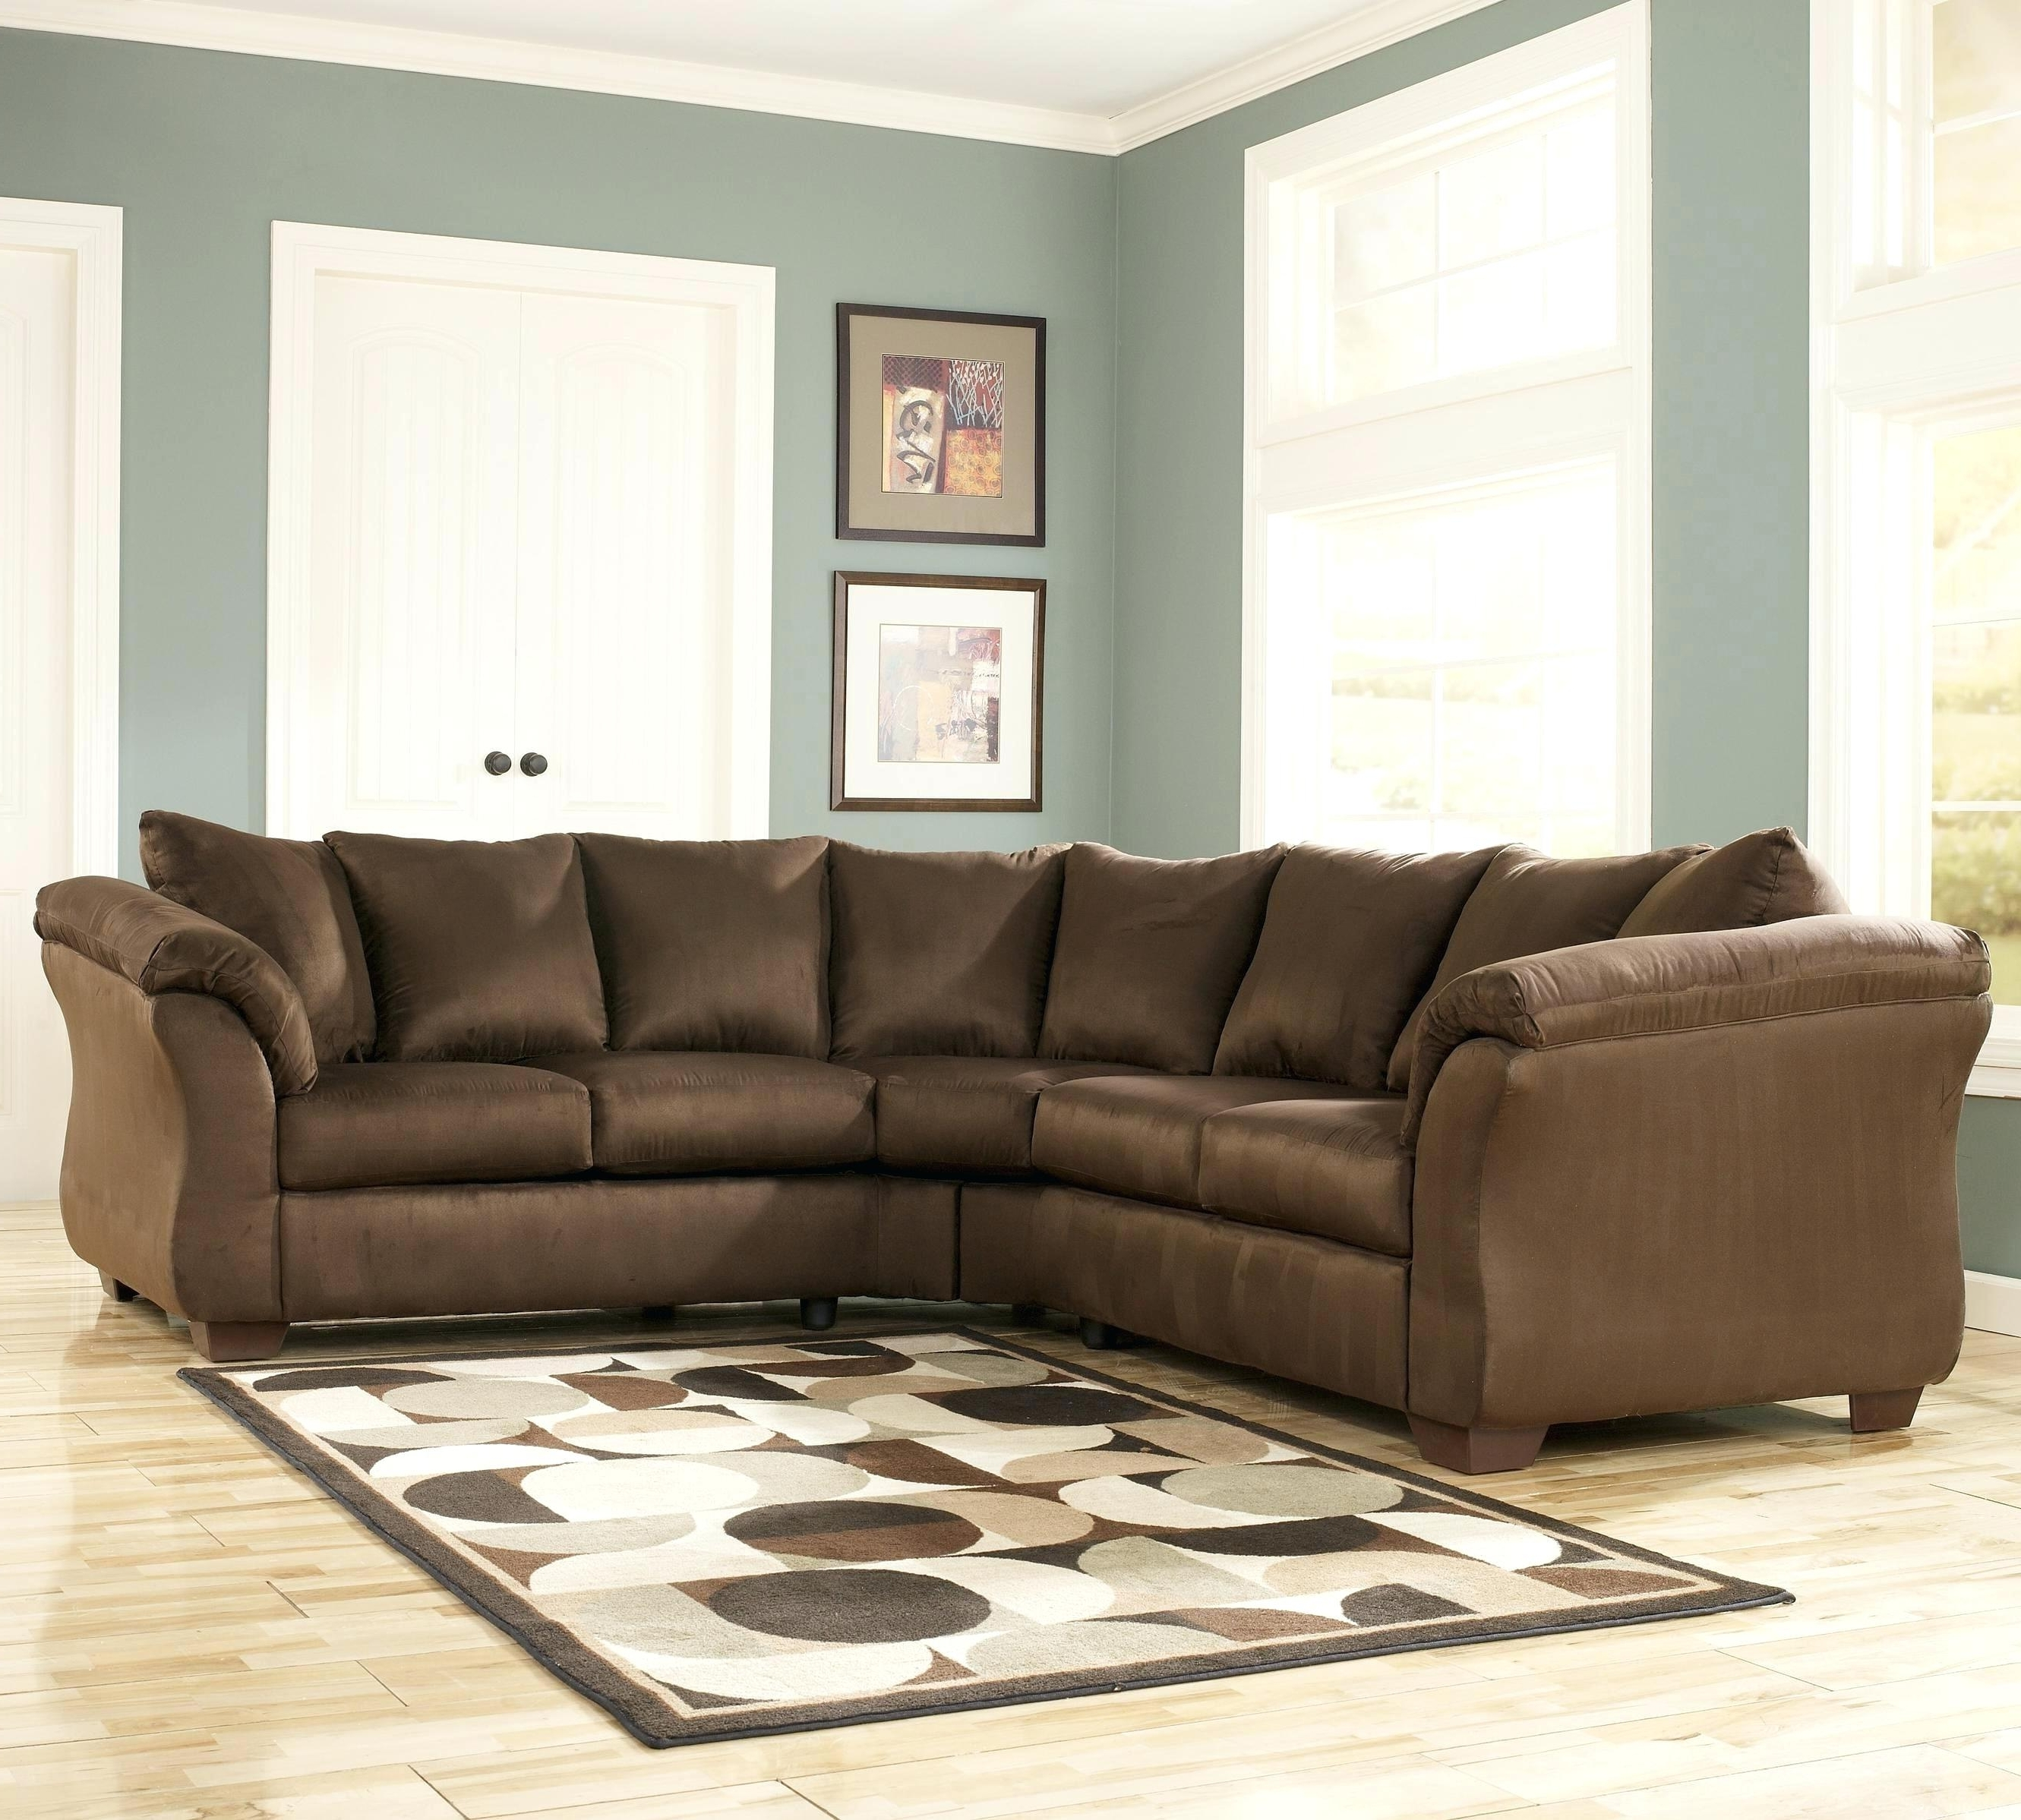 2018 Sofa Macys Leather Sectional Sleeper Queen Bed Throughout